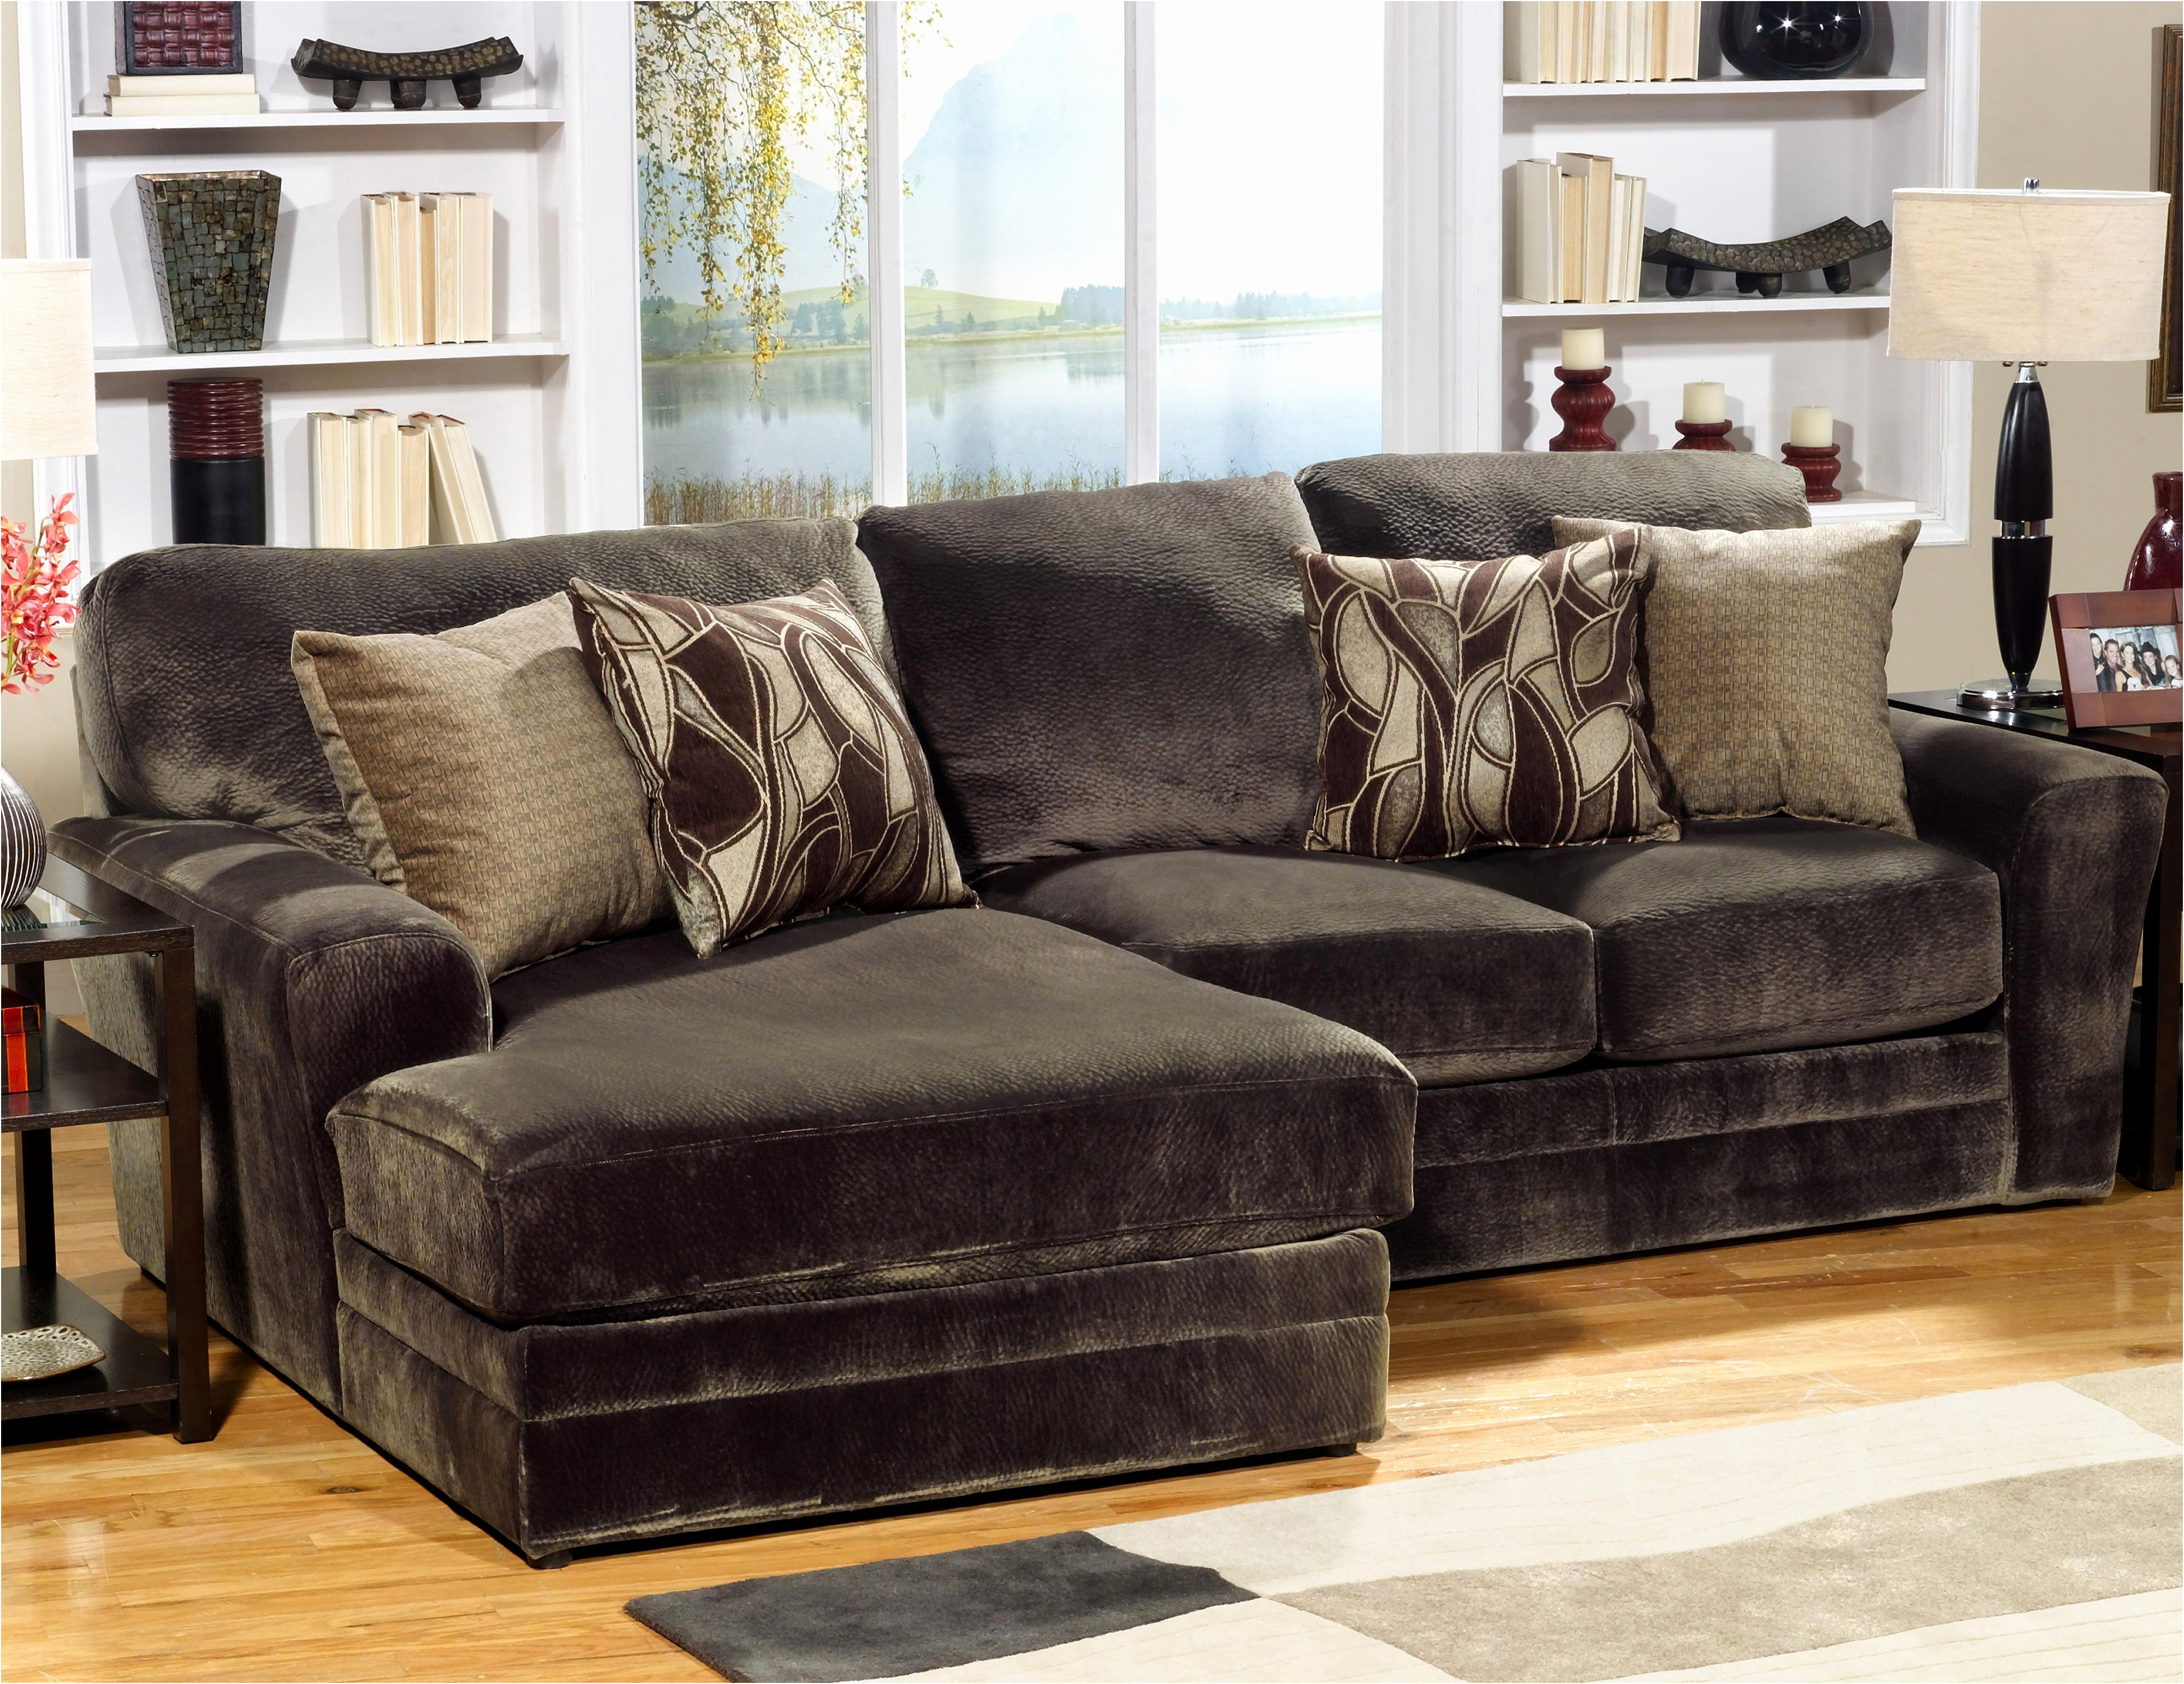 Trendy Evan Piece Sectional Sofa Set Centerfieldbar Two Frontenac Intended For Evan 2 Piece Sectionals With Raf Chaise (Gallery 5 of 20)